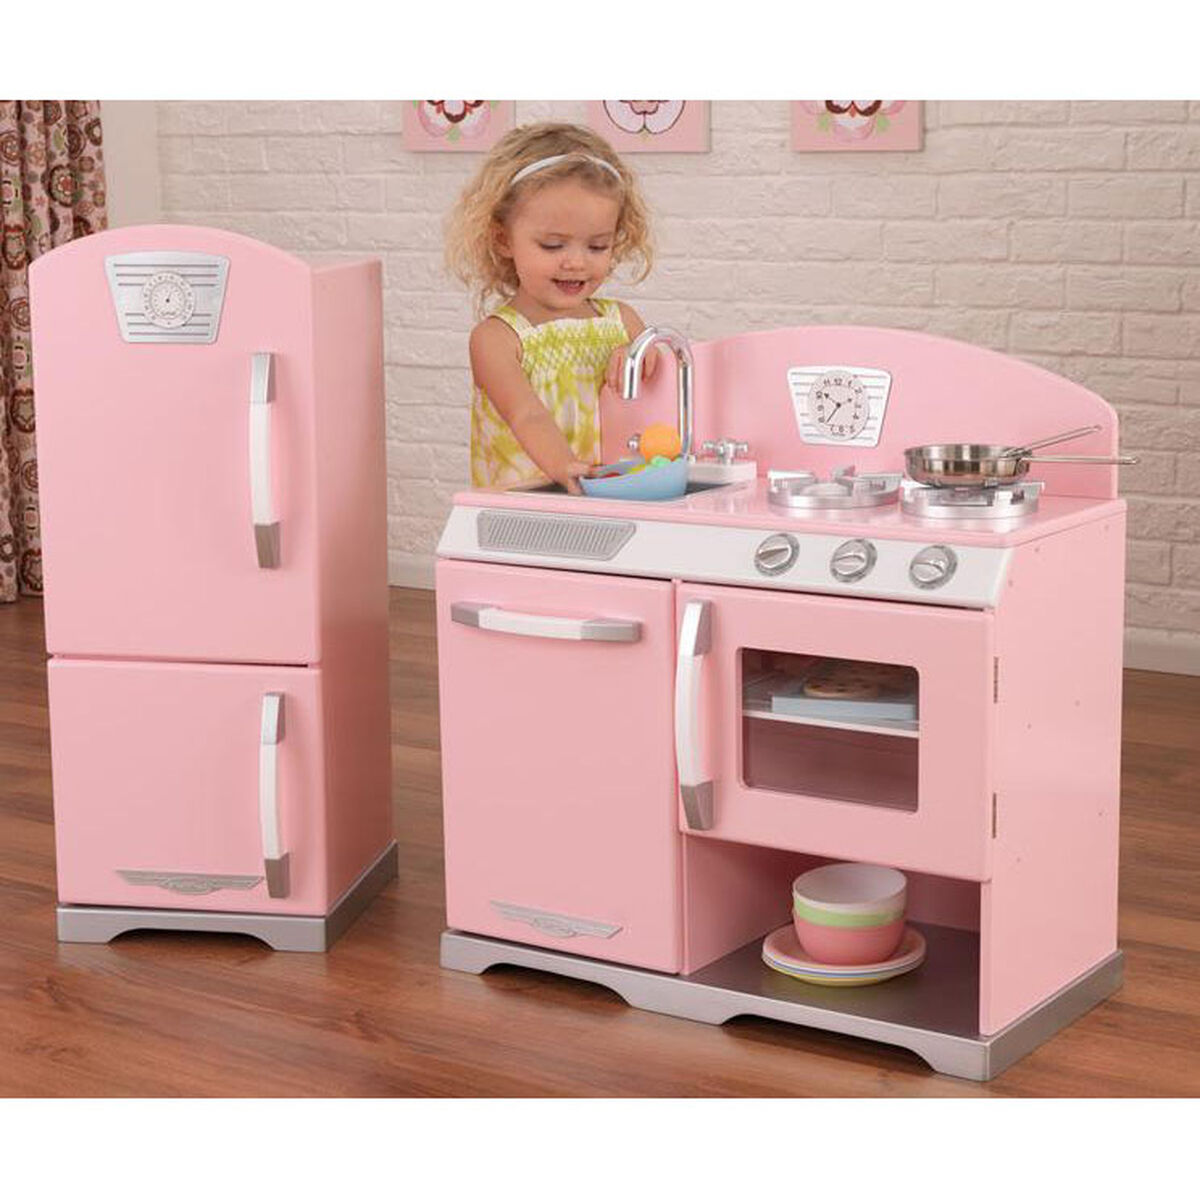 Our Kids Wooden Make Believe Retro Kitchen Stove And Refrigerator Play Set Pink Is